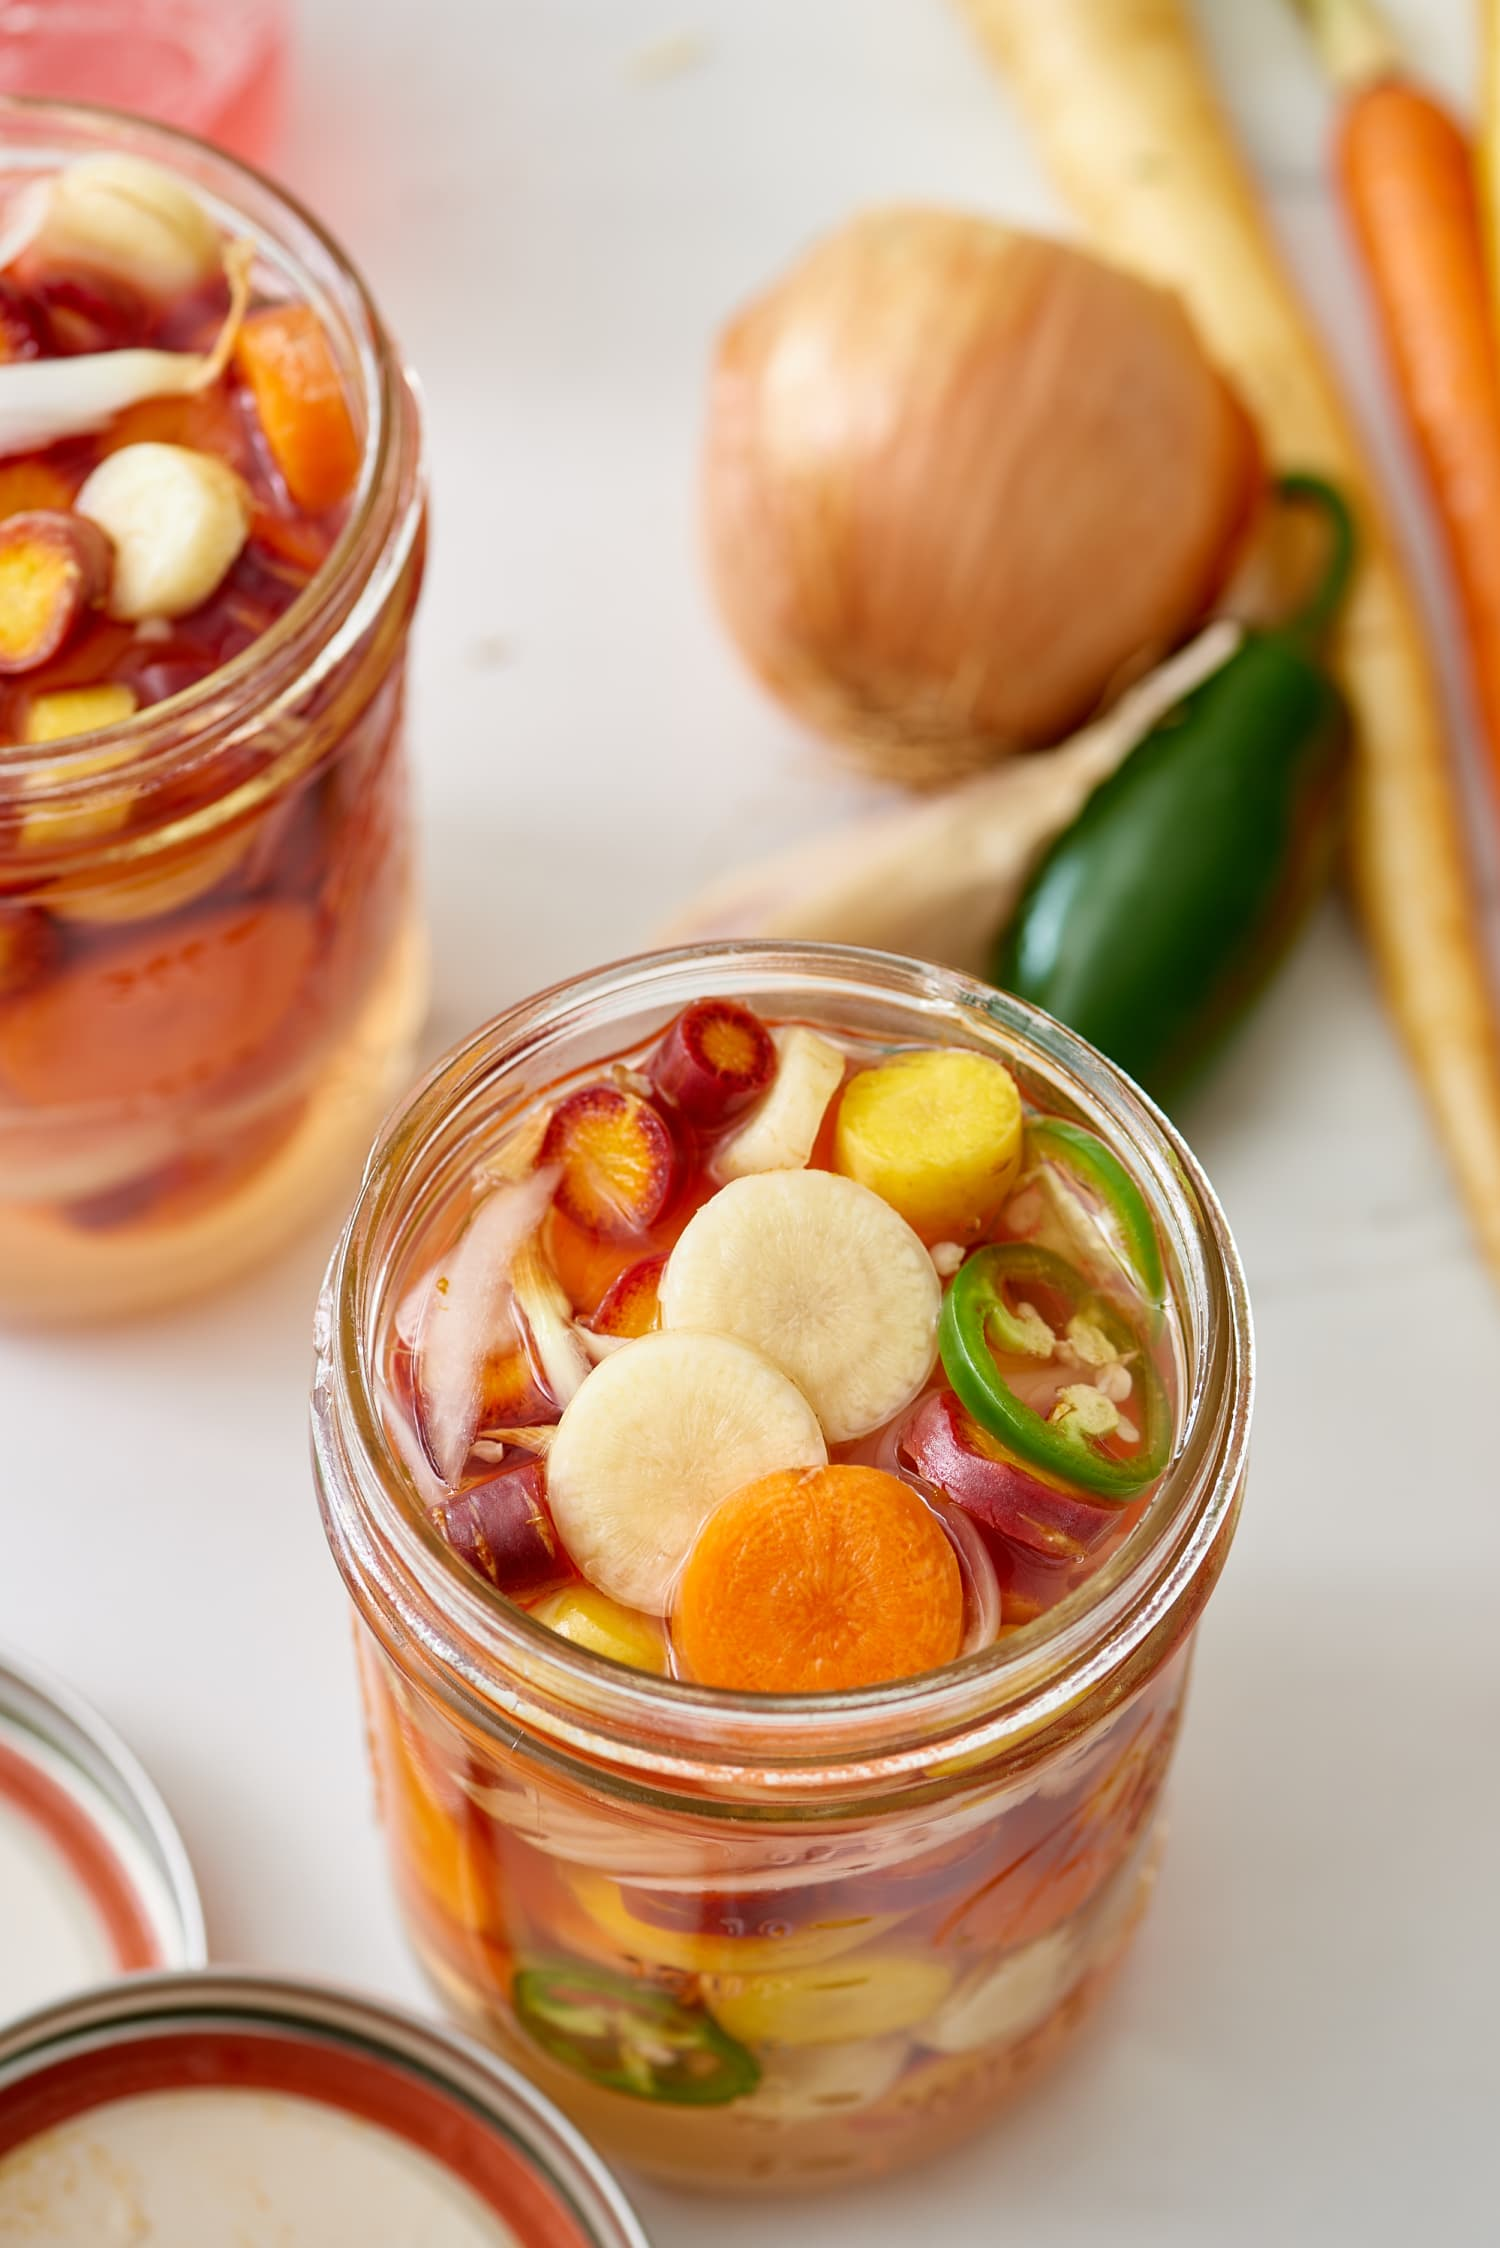 How To Make Spicy Mexican-Style Pickled Carrots